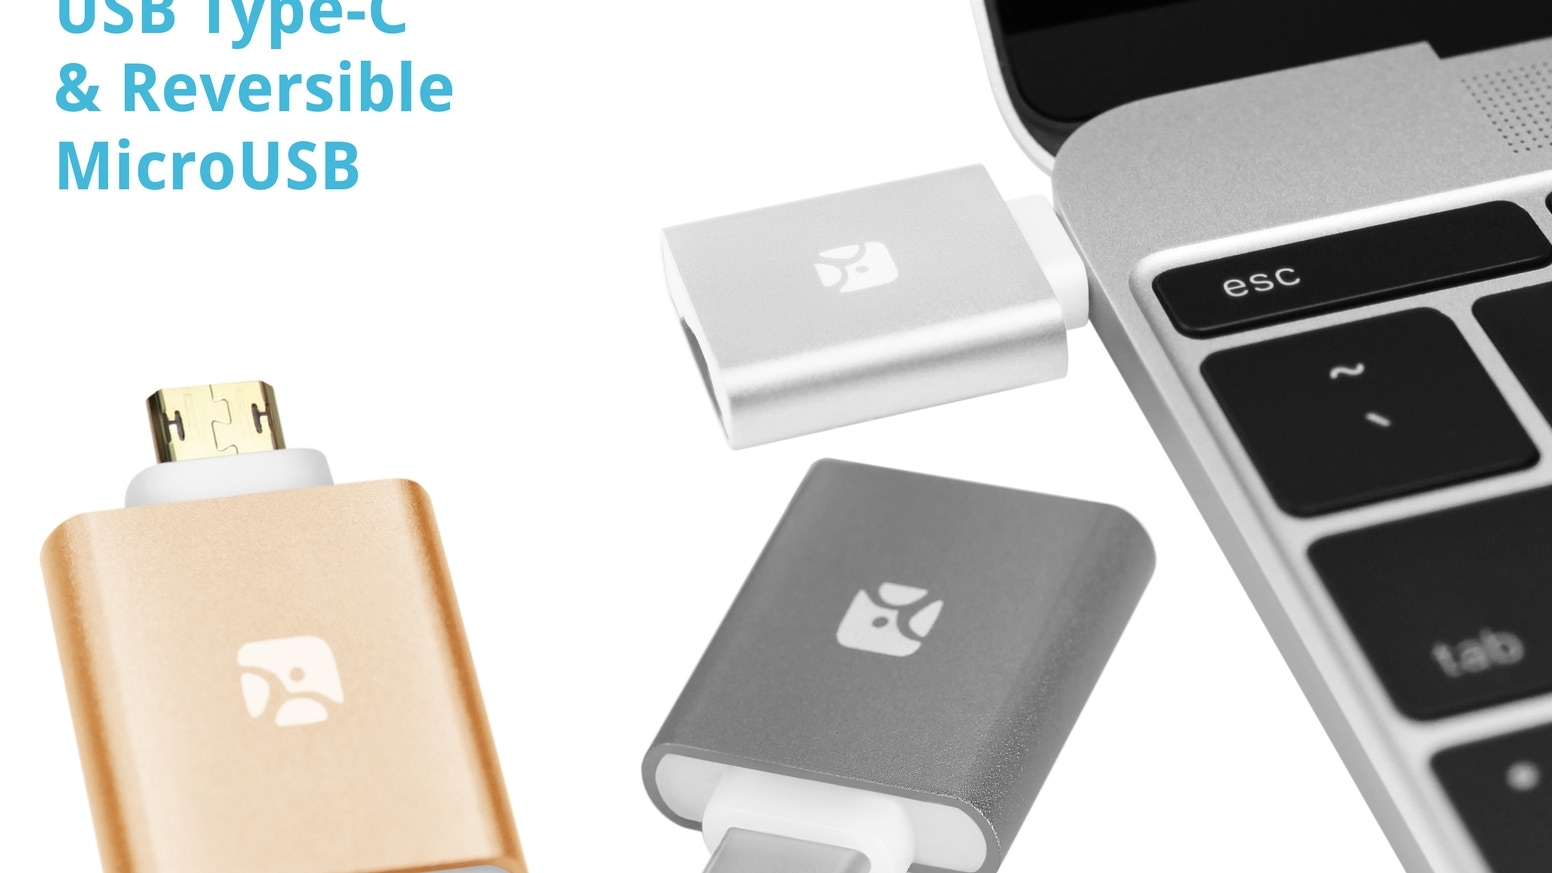 Mini Microsd Reader Redux Type C Aluminum Reversible By Andy Flashdisk Atau Flashdrive Otg Samsung Original The All New Now With Or Microusb Plug